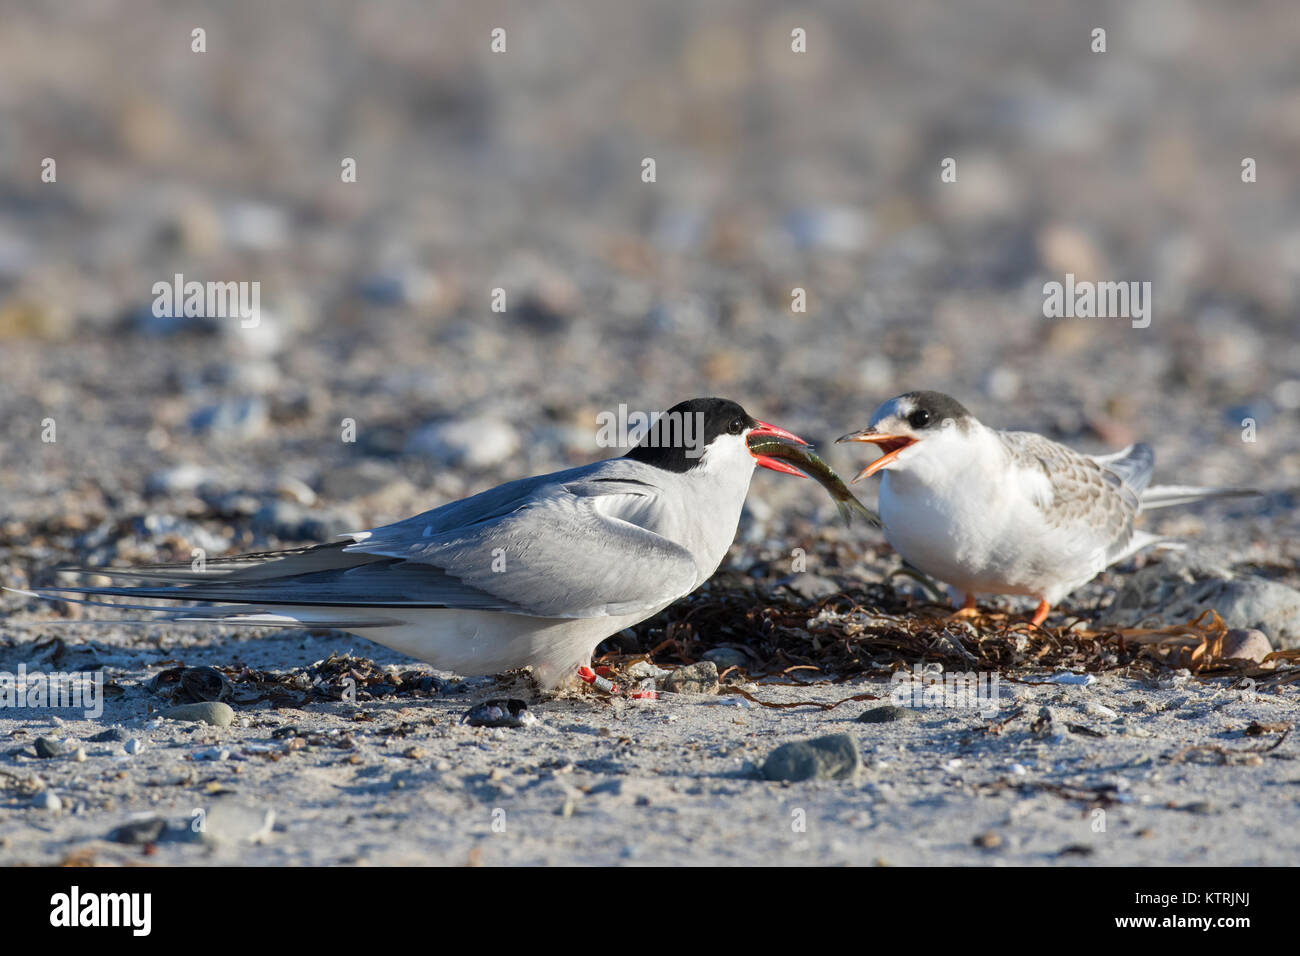 Arctic tern (Sterna paradisaea) feeding fish to chick on beach in summer - Stock Image